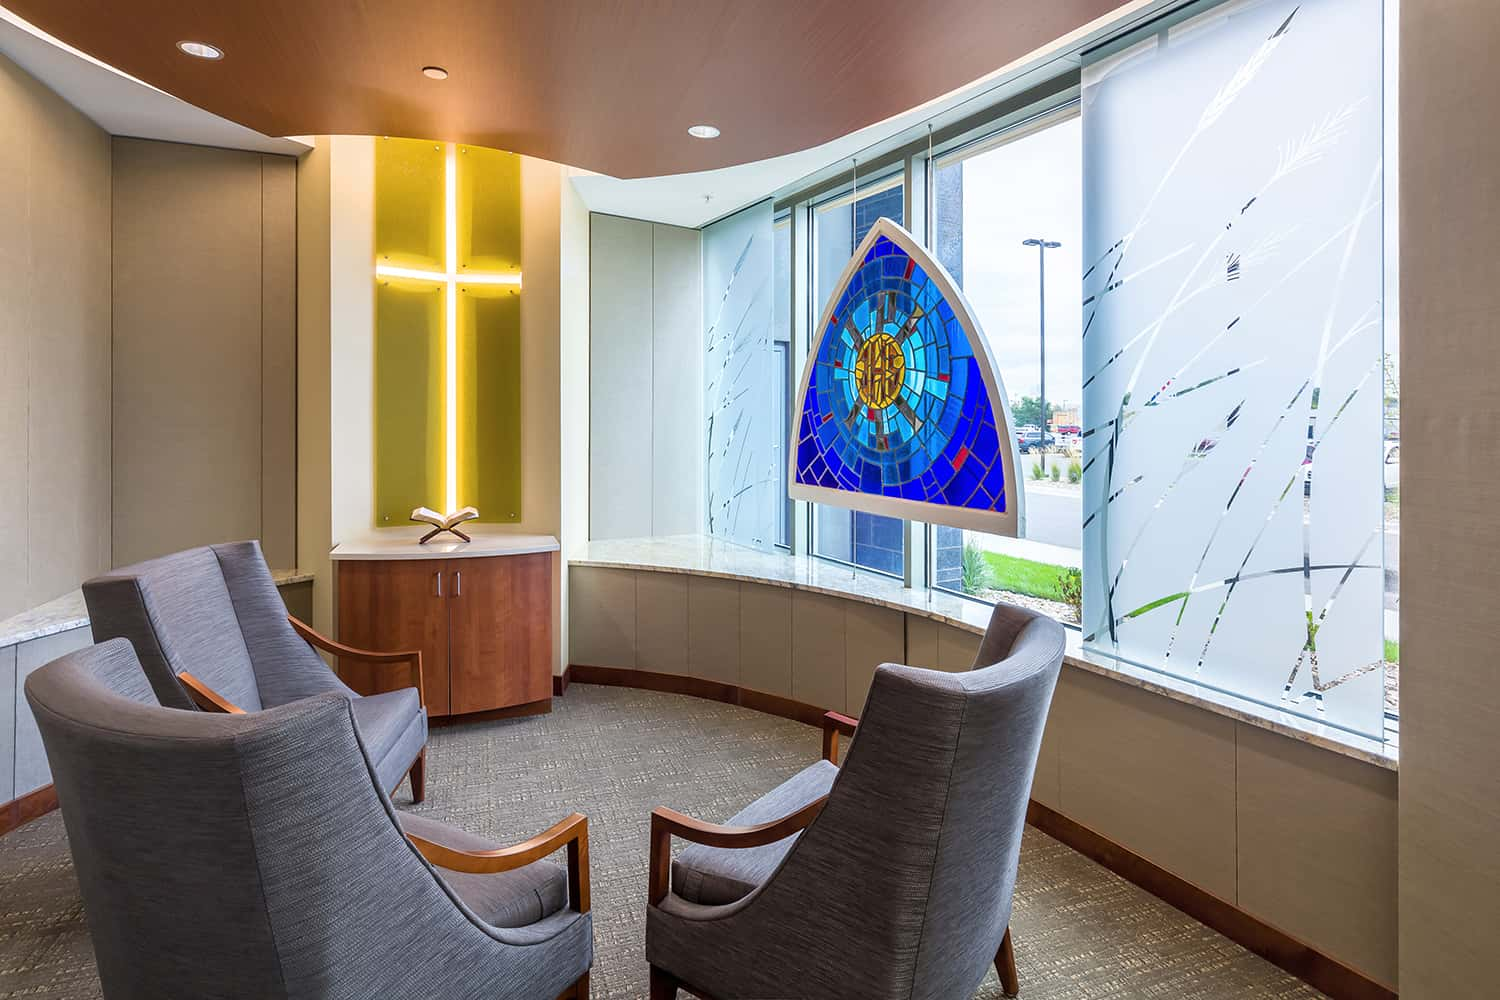 A calming meditation space with stained glass accent piece and lighted cross detail.